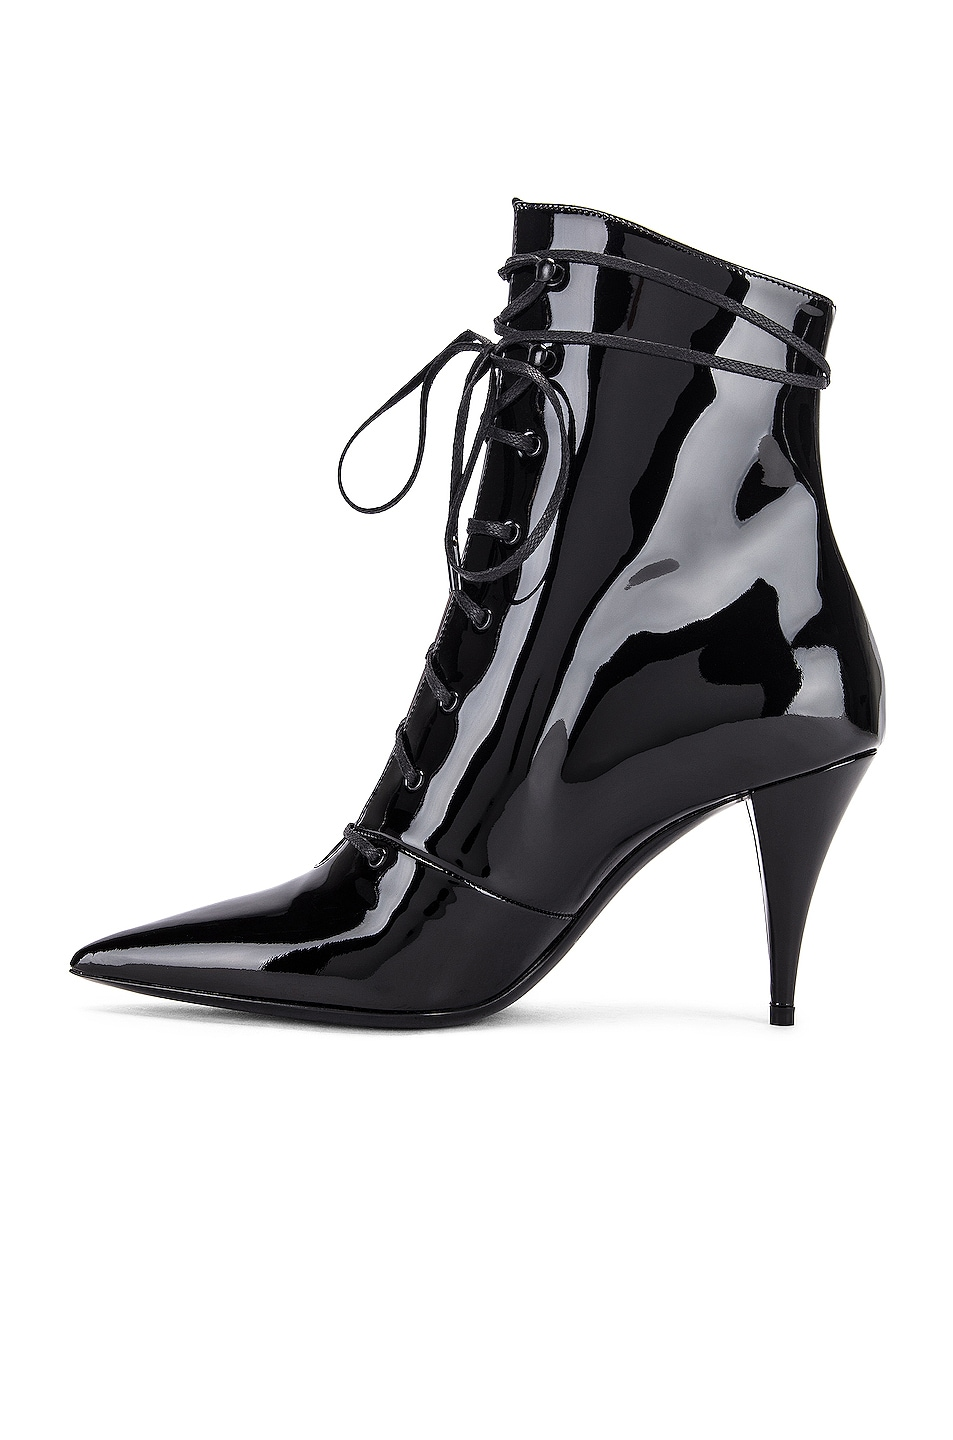 Image 5 of Saint Laurent Kiki Lace Up Ankle Booties in Black